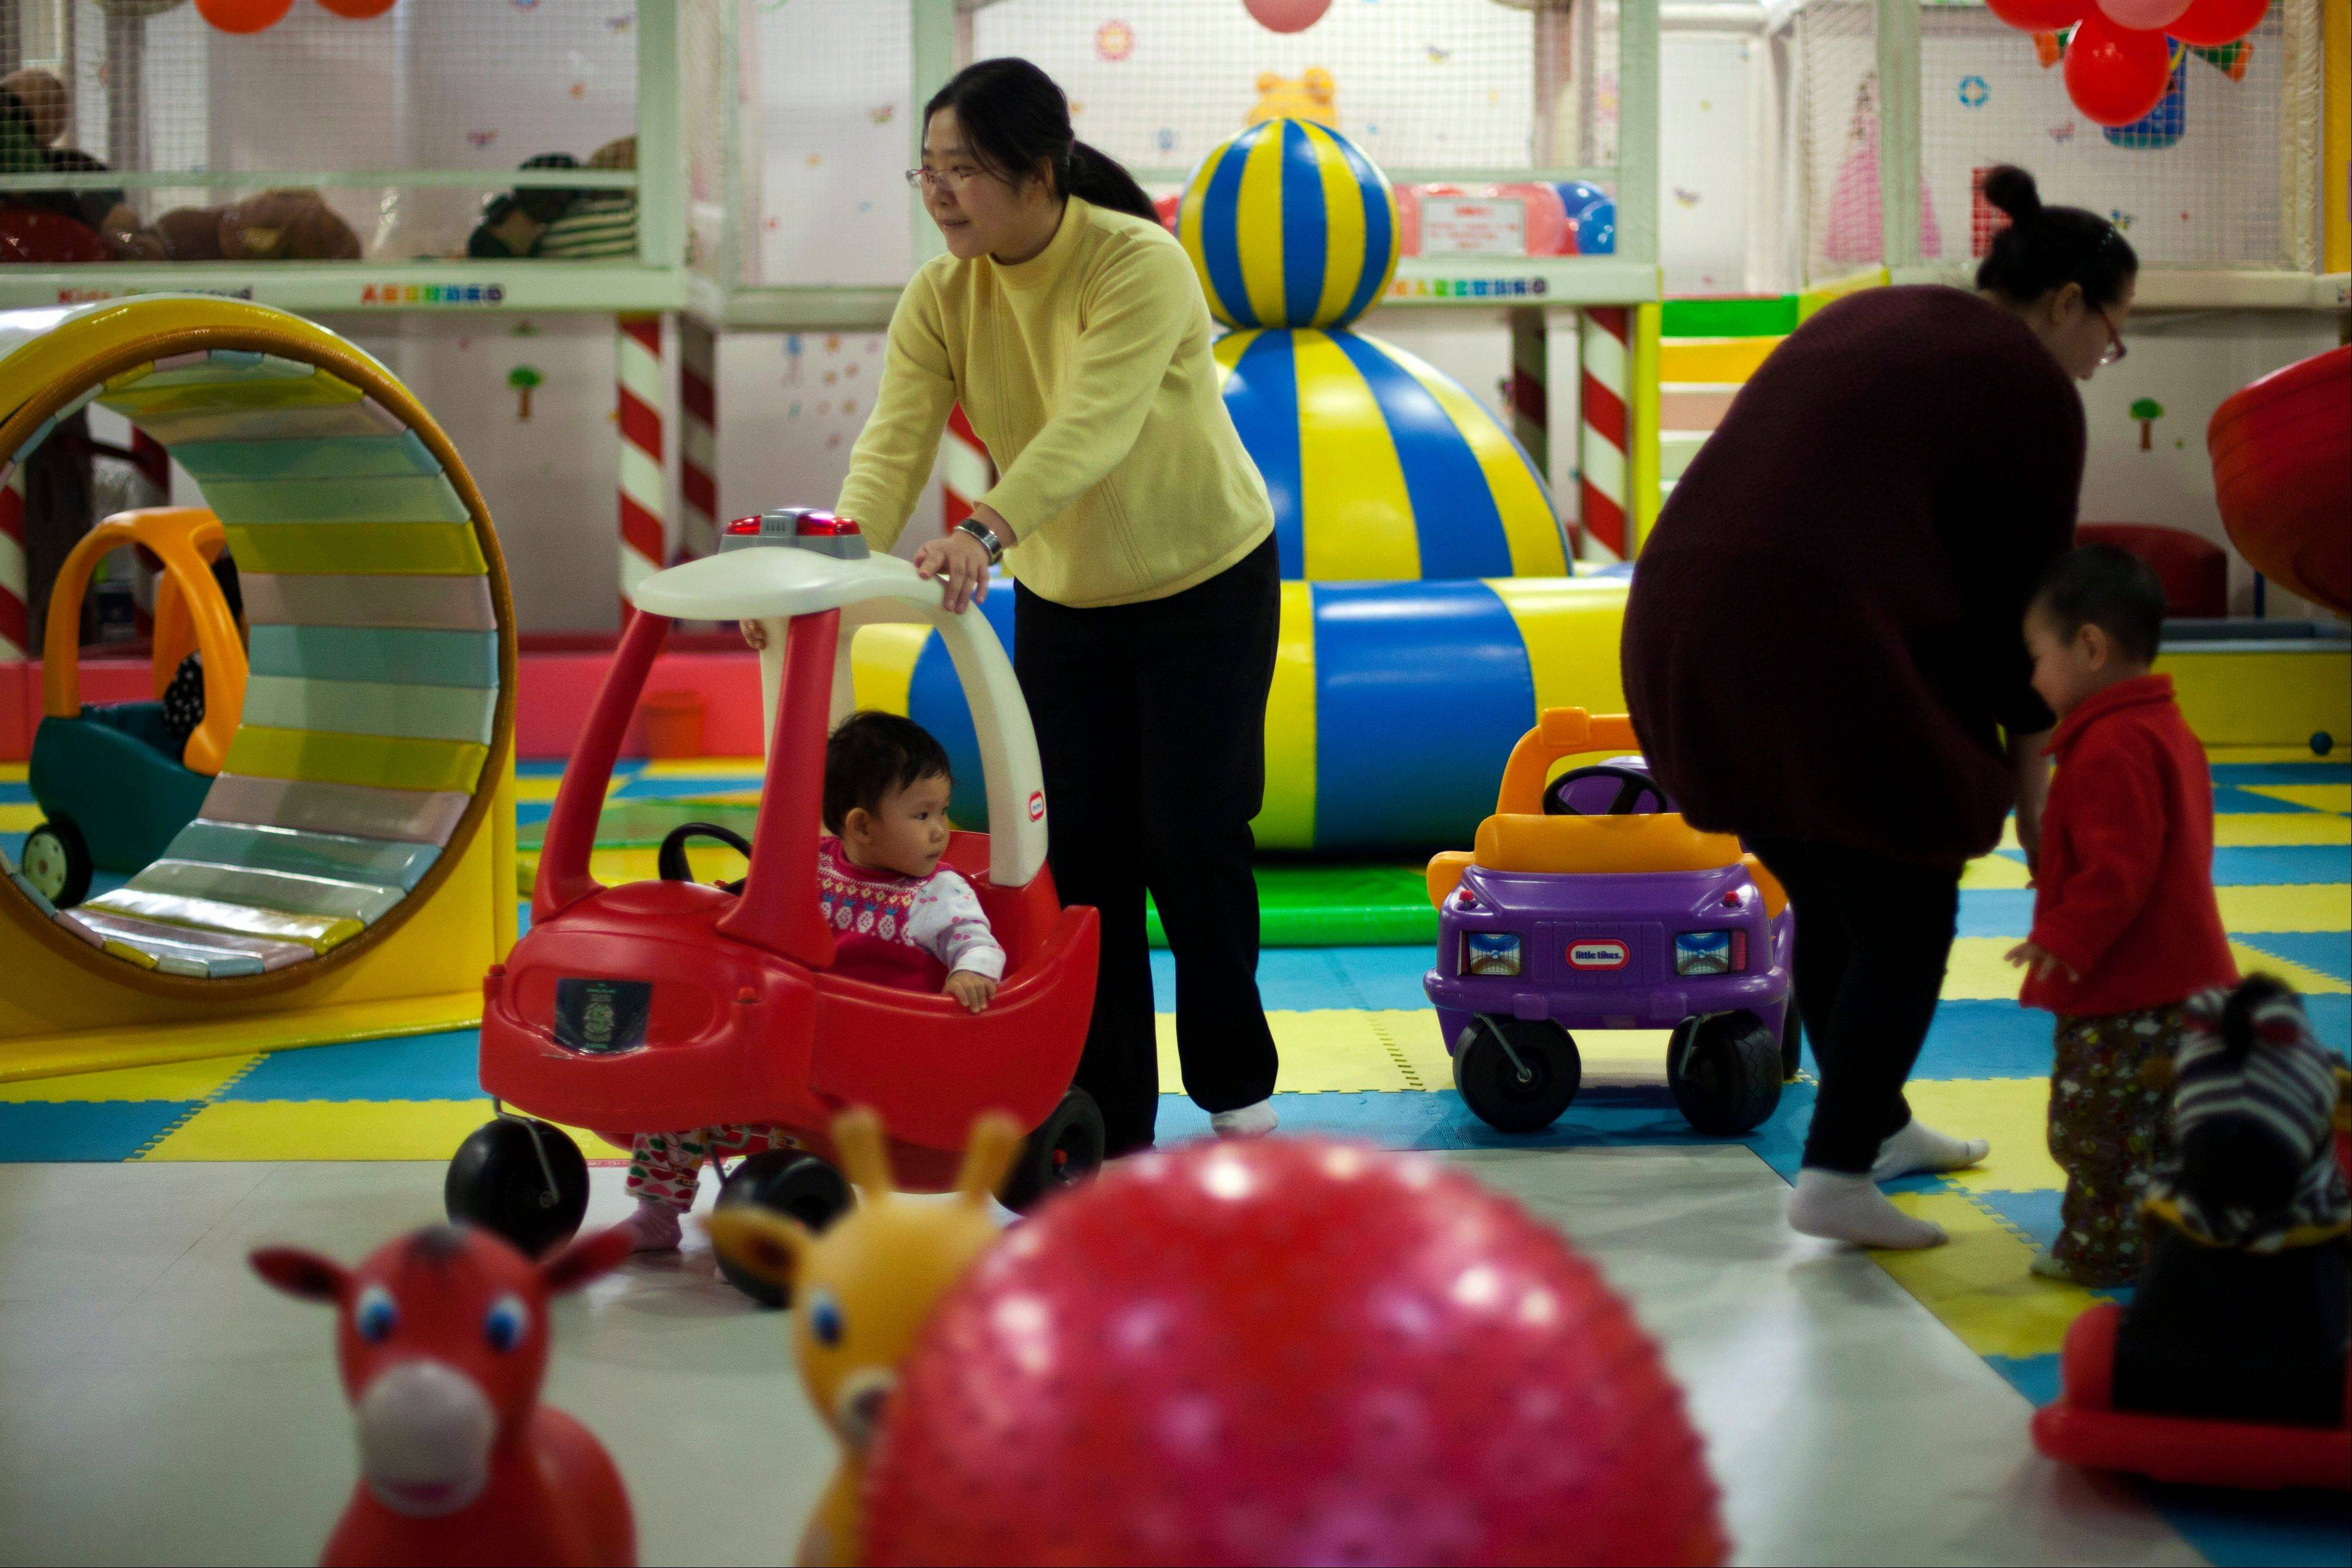 China to ease 1-child policy, abolish labor camps